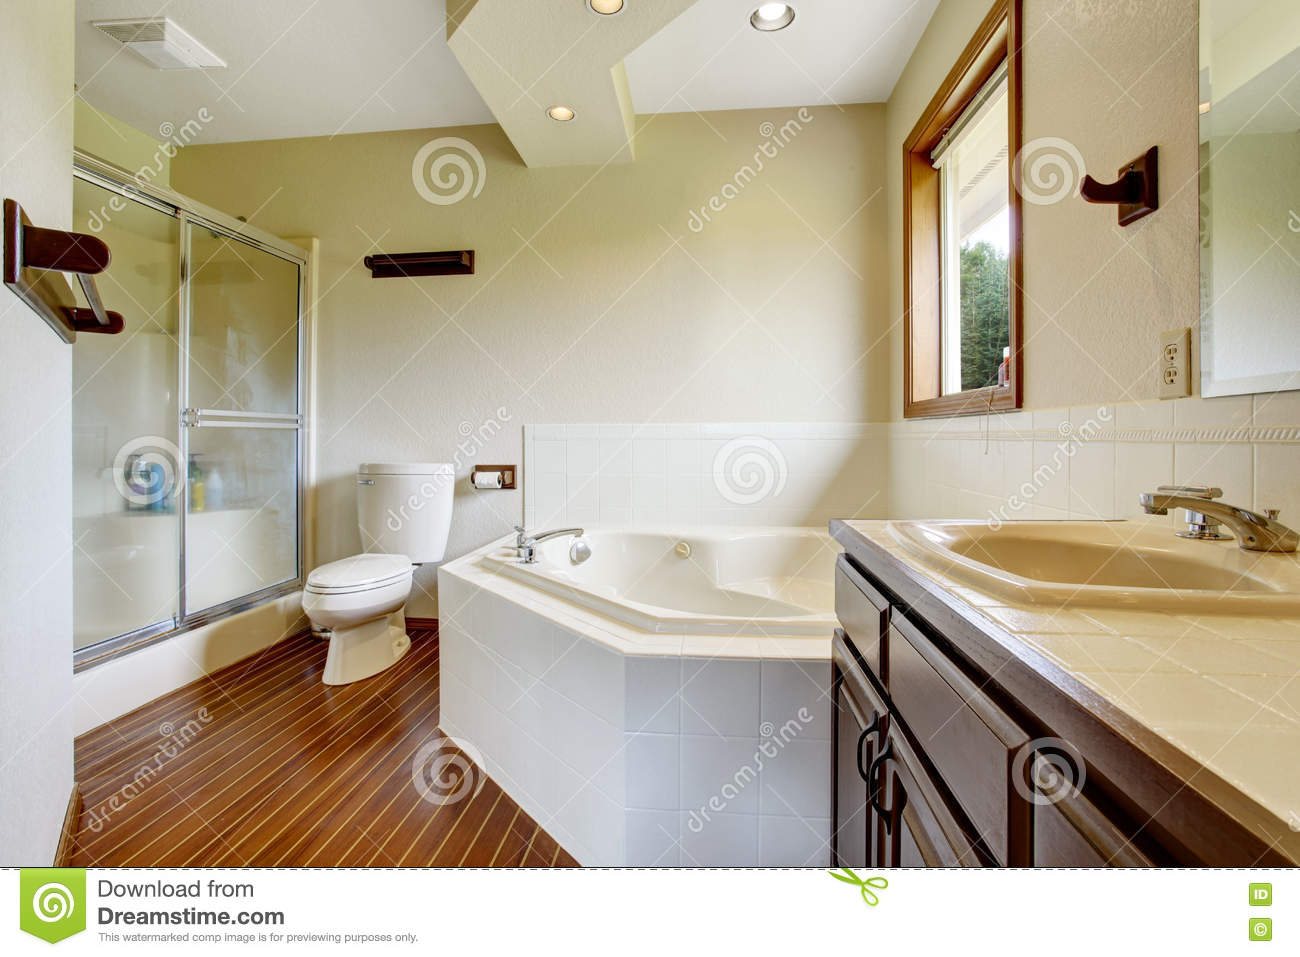 Master Bathroom Interior With Glass Shower, Hardwood Floor And White ...